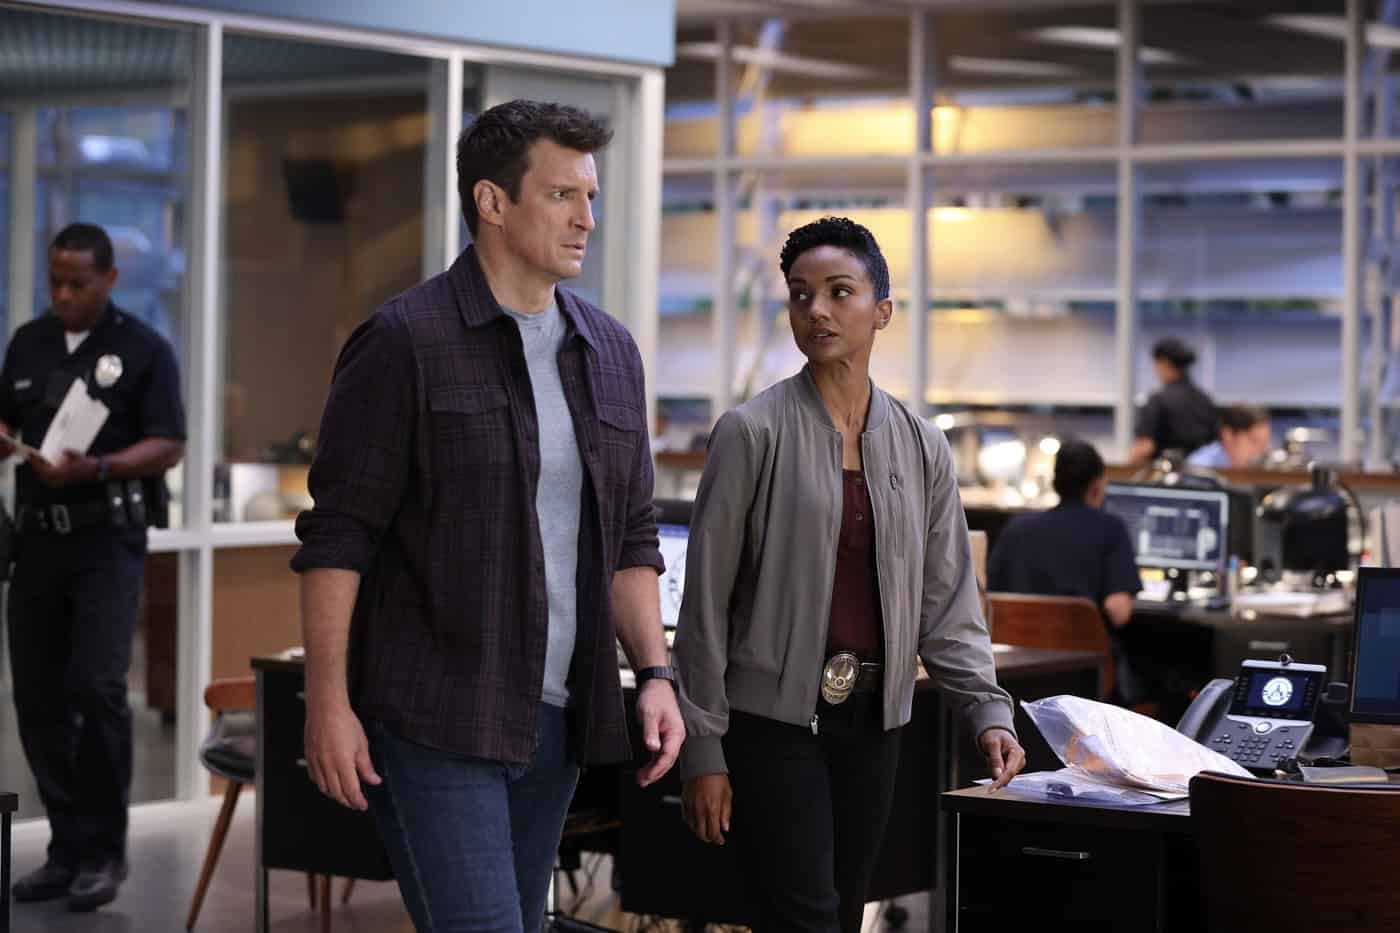 """THE ROOKIE Season 4 Episode 1E - """"Life and Death"""" – Officer Nolan and the entire team race against the clock to locate Lopez after she is kidnapped on her wedding day, not only to save her life but her unborn child's, on the season four premiere of """"The Rookie,"""" SUNDAY, SEPT. 26  (10:00-11:00 p.m. EDT), on ABC. (ABC/Raymond Liu) NATHAN FILLION, MEKIA COX"""